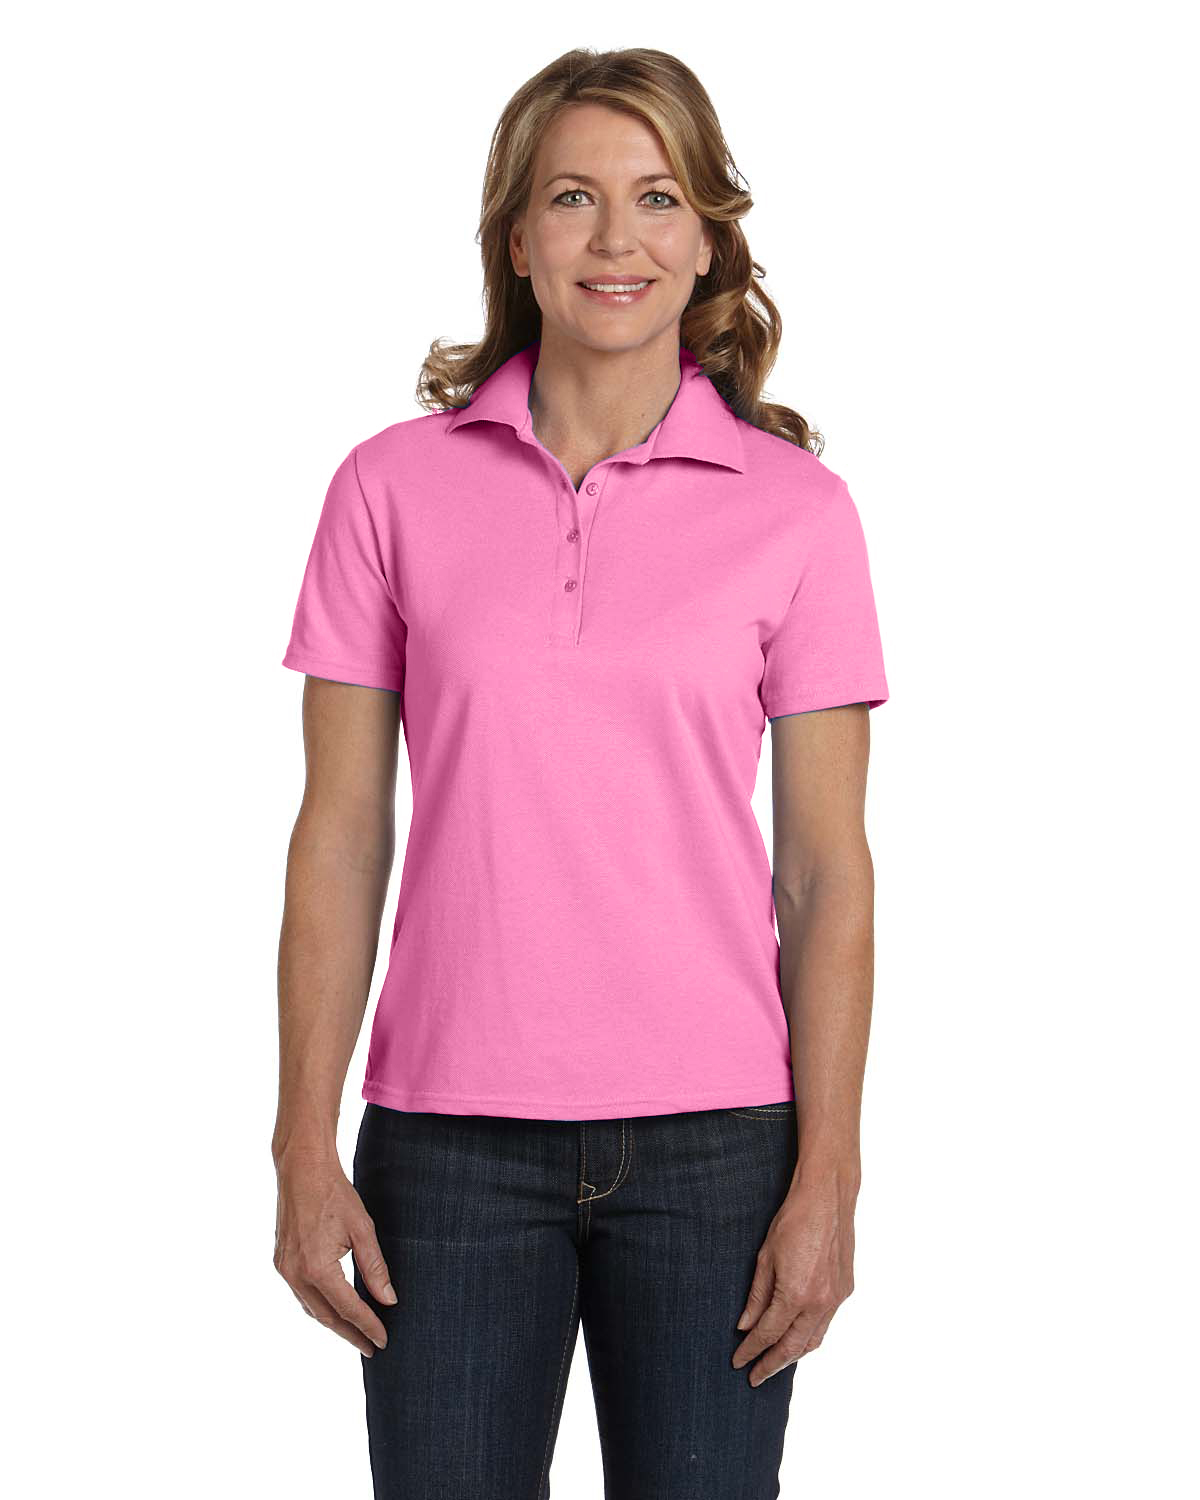 Womens cotton polo buy wholesale hanes cotton pique for Where to buy polo shirts cheap